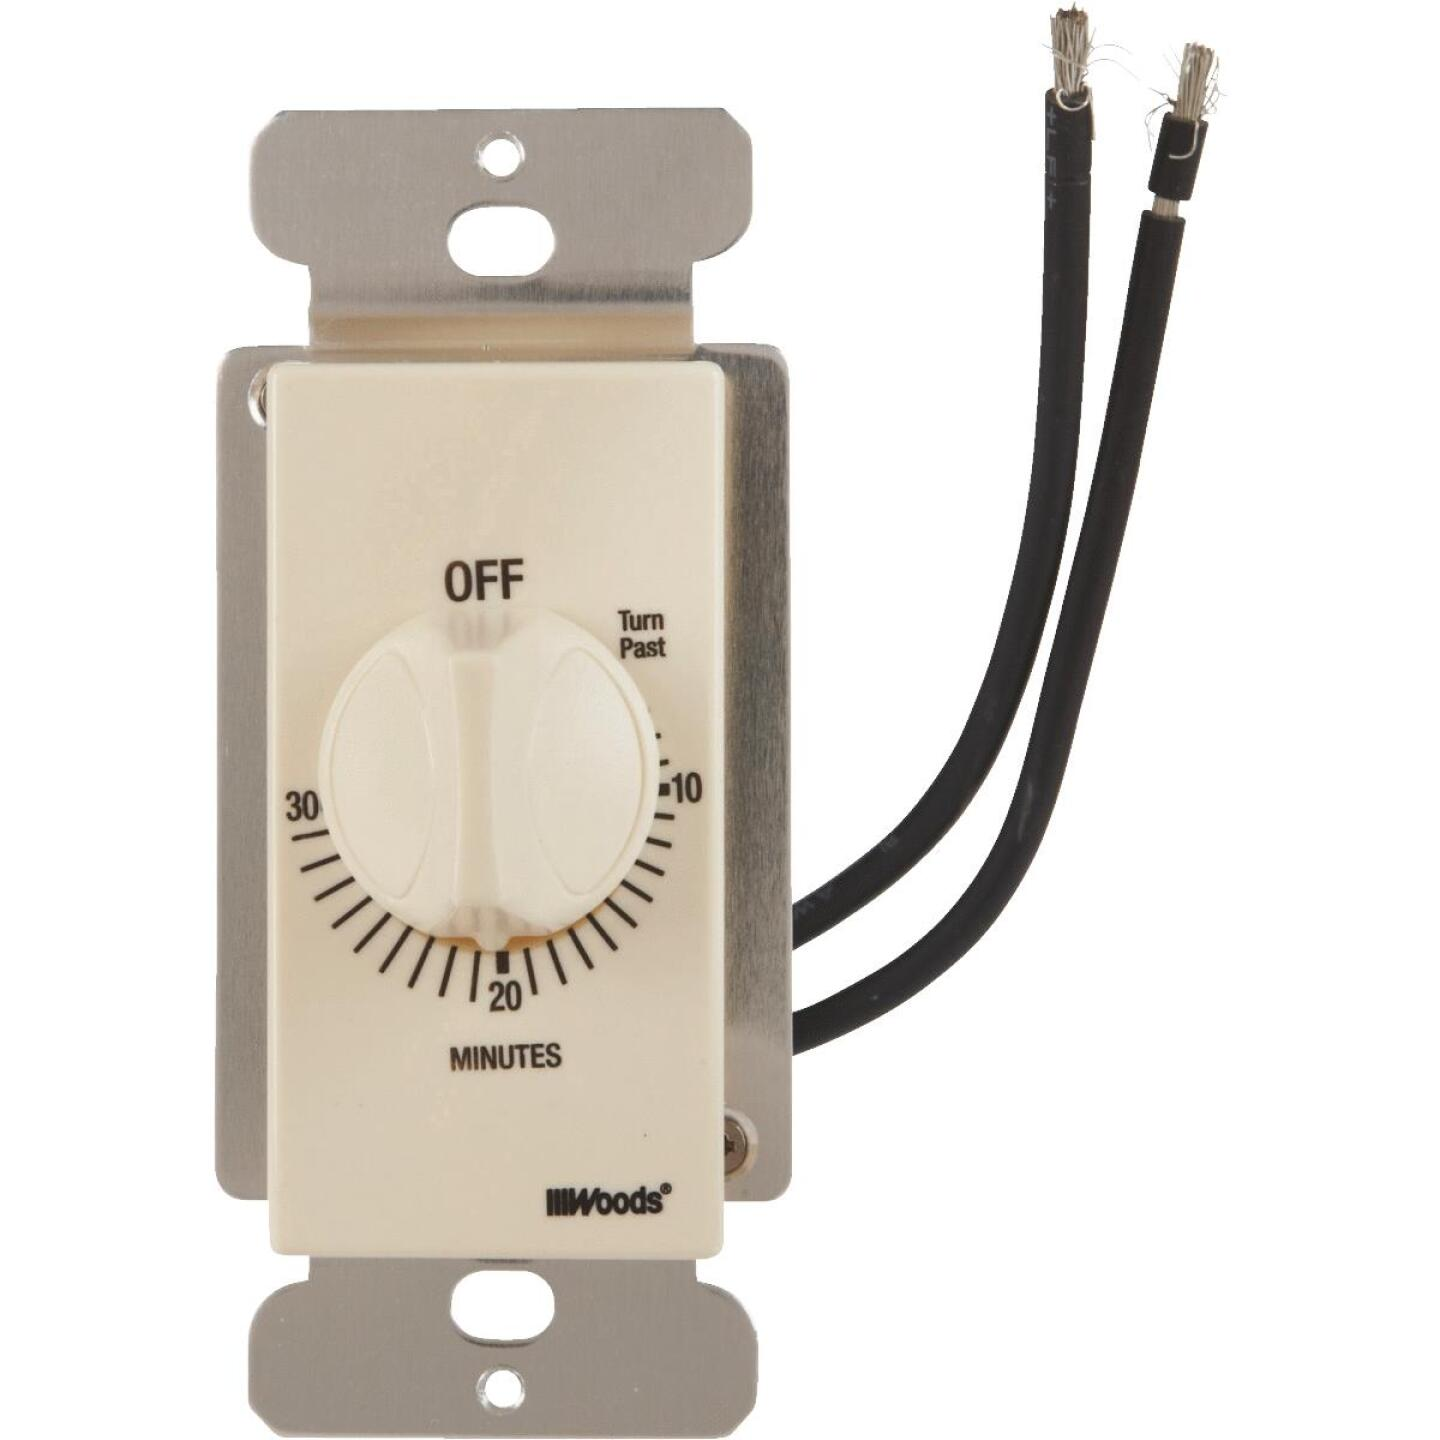 Woods 125V In-Wall 30-Minute Spring Wound Almond Timer Image 1